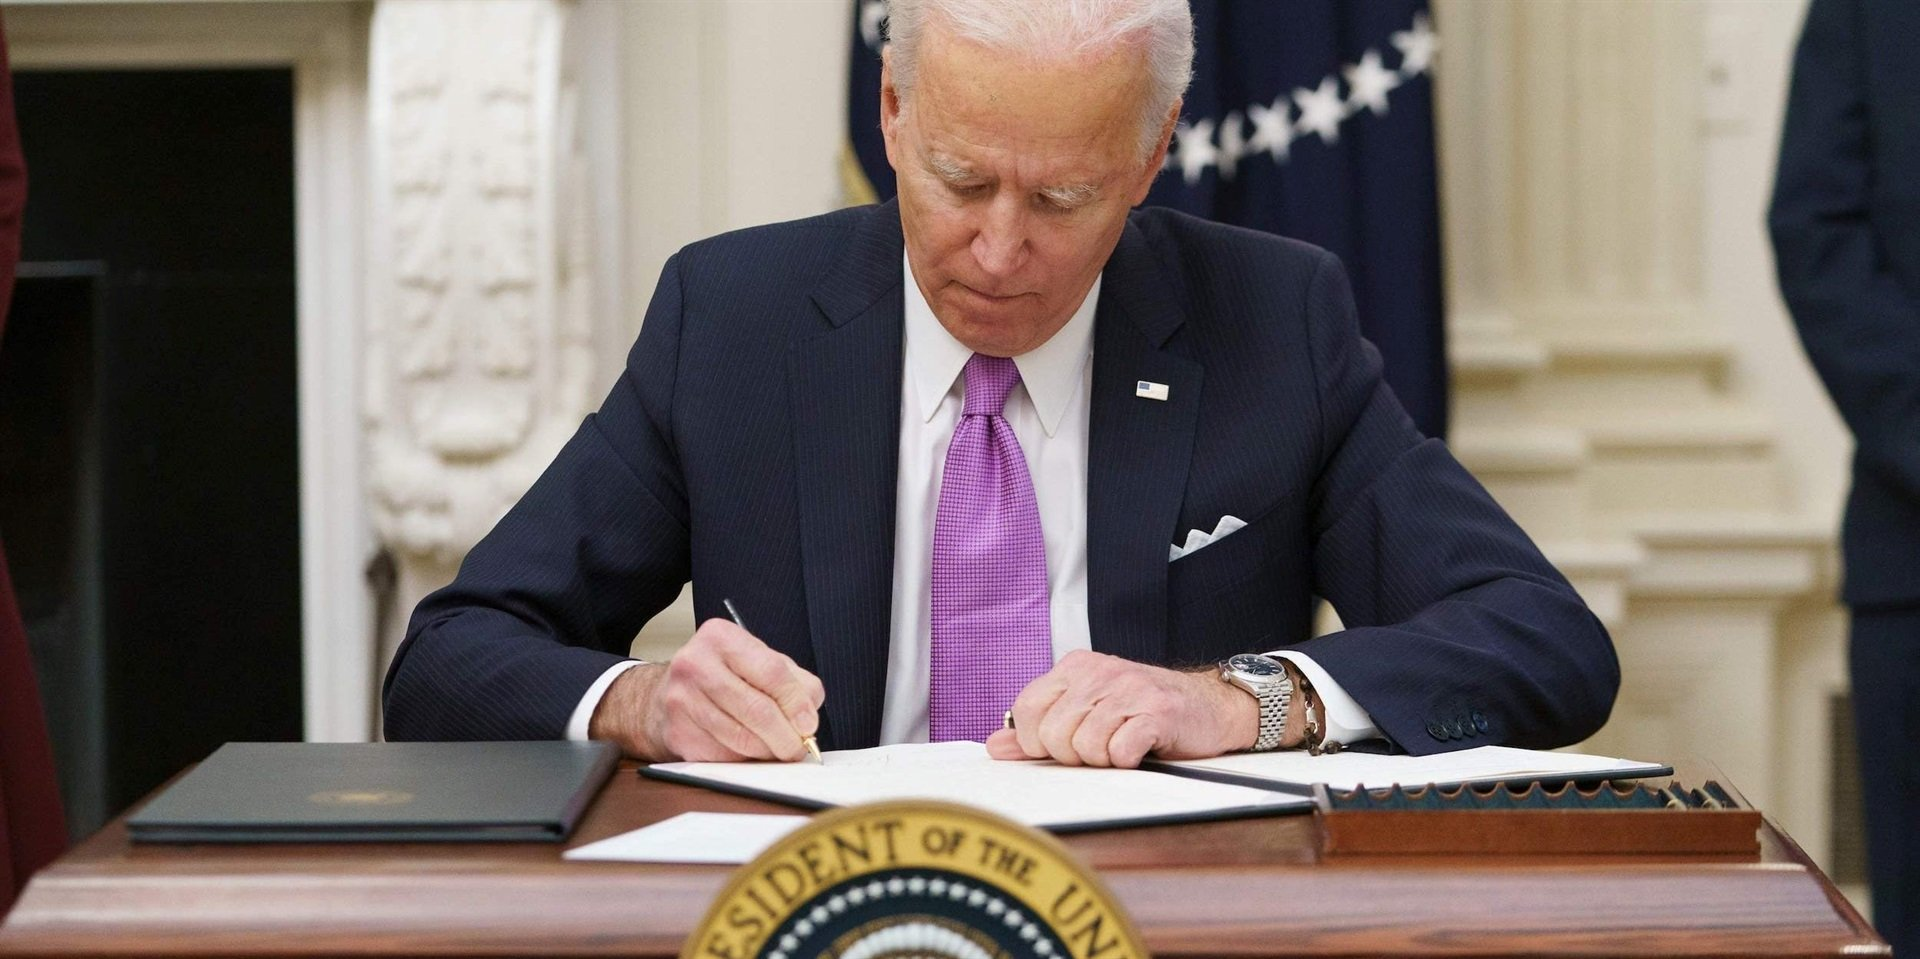 President Joe Biden signs executive orders in the first days of his presidency.